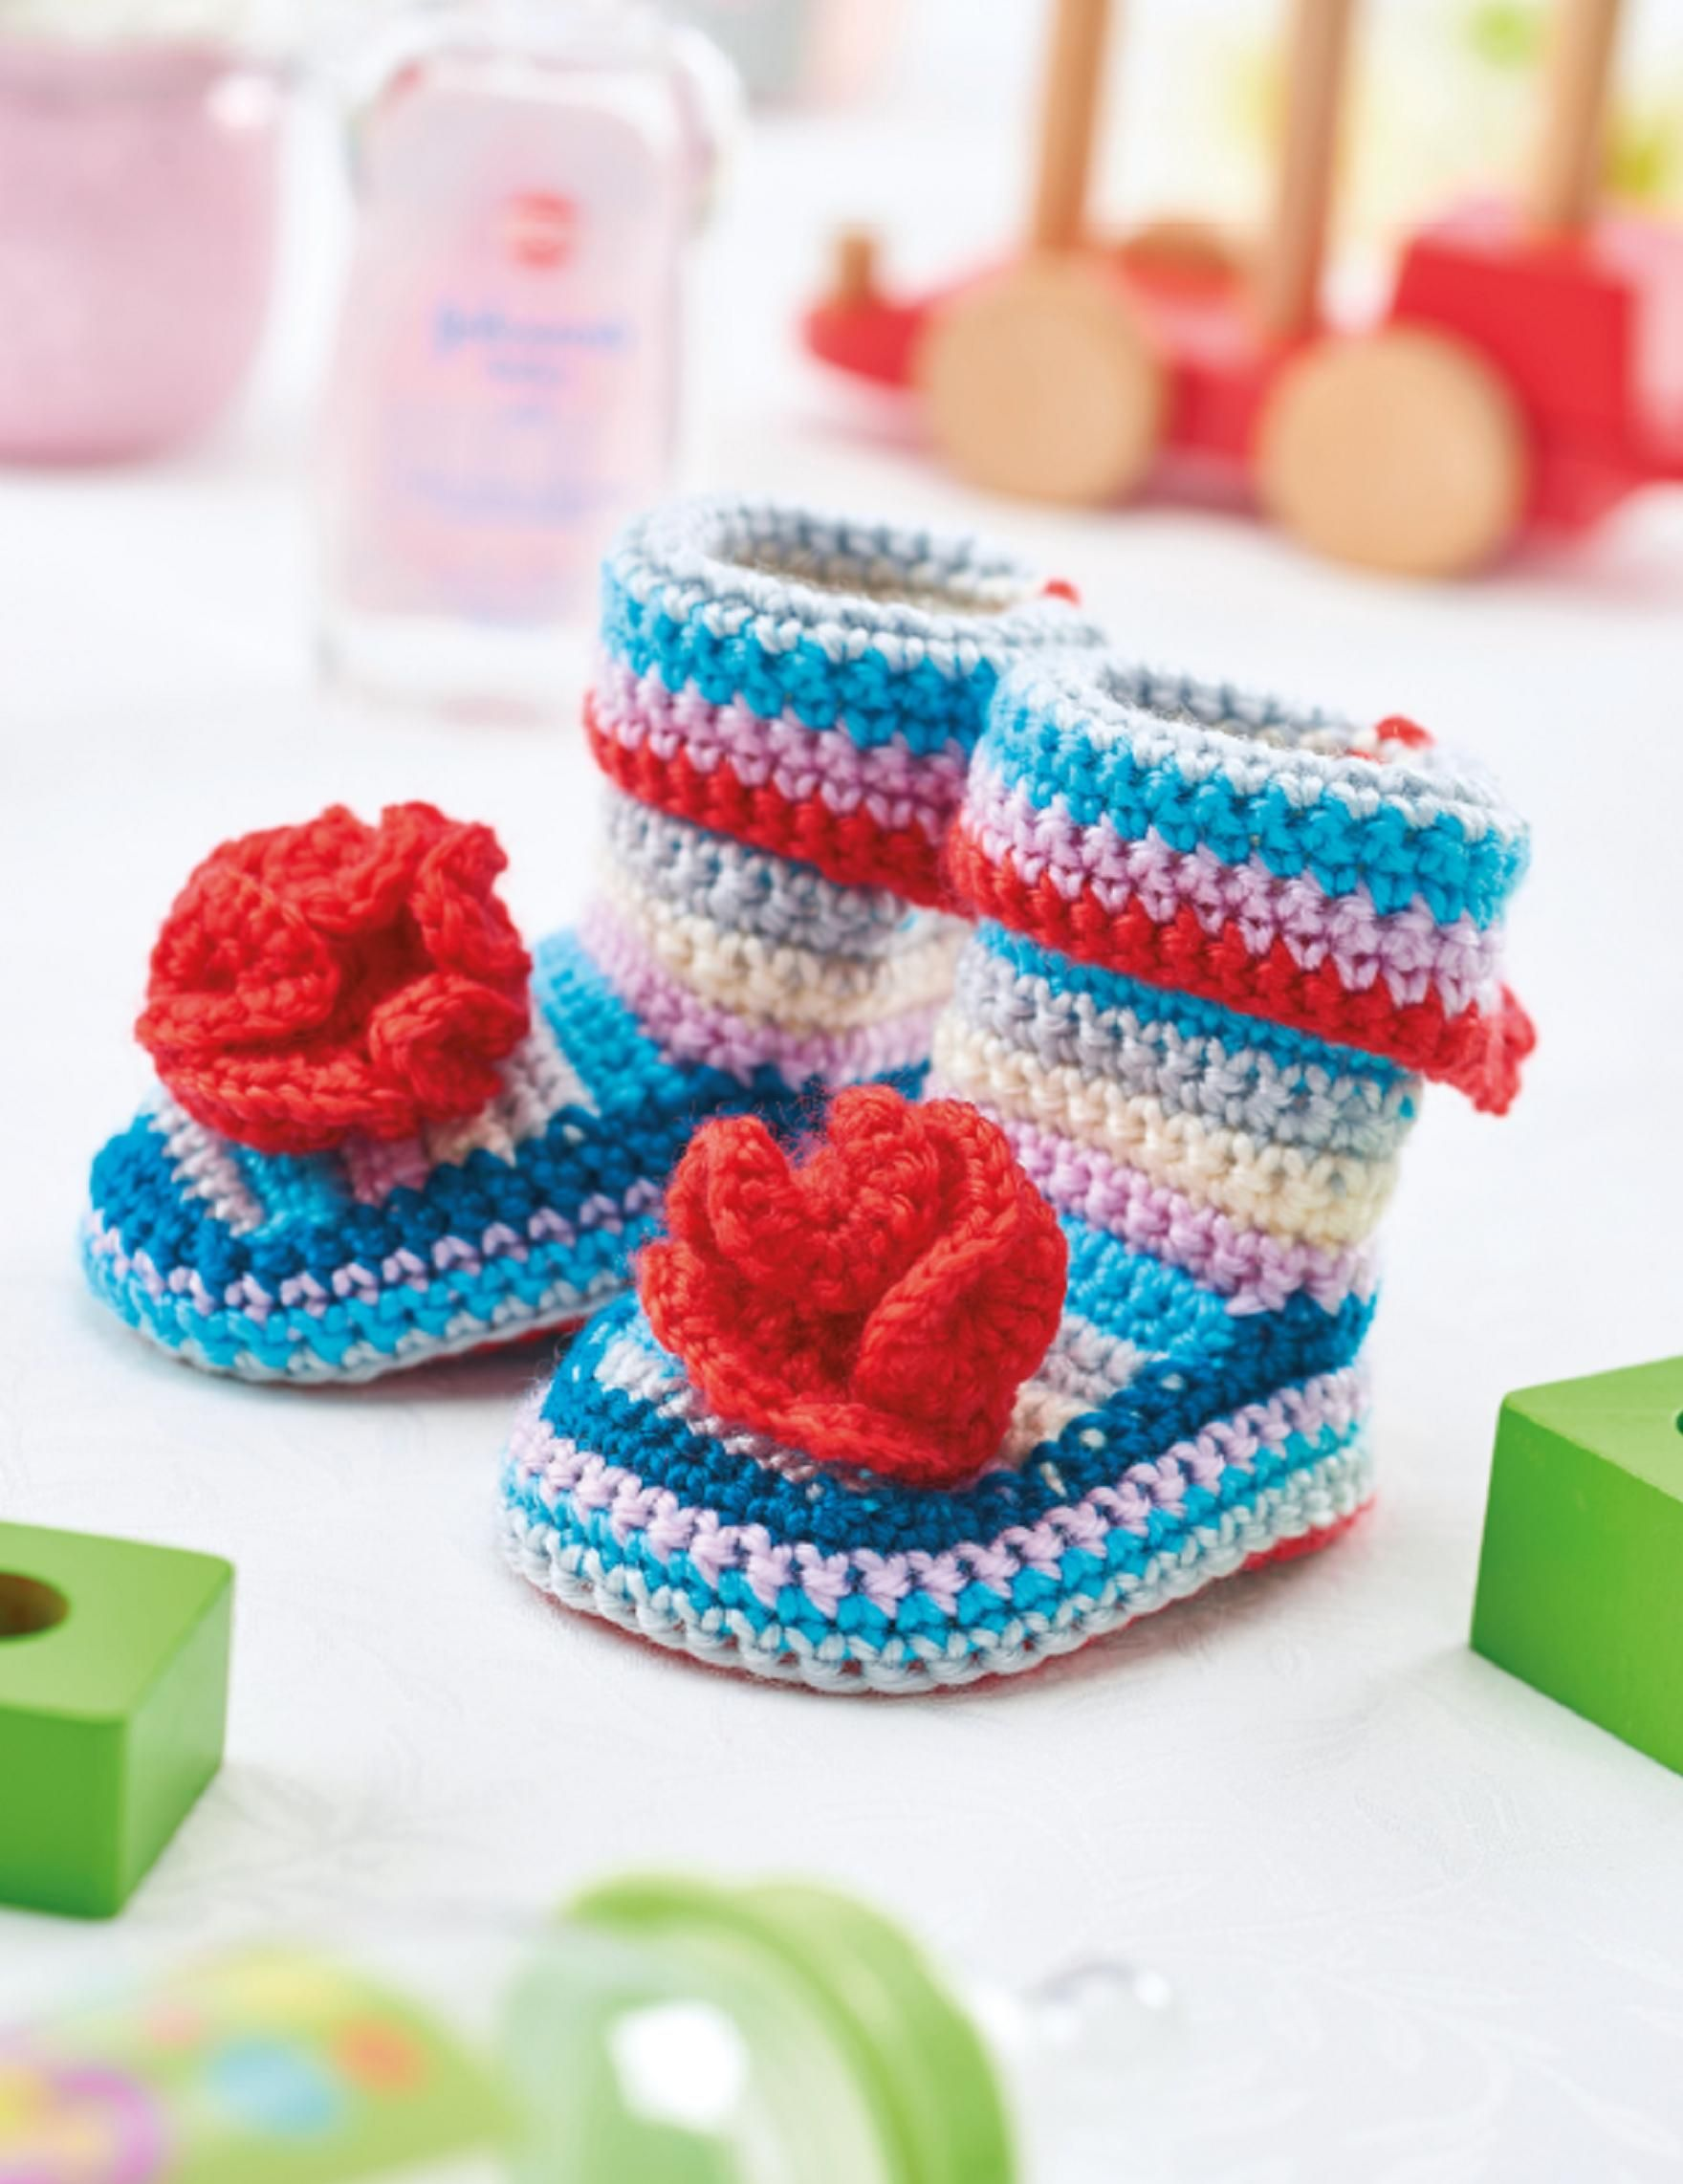 Baby booties by jackie carreira free crochet pattern with baby booties by jackie carreira free crochet pattern with website registration topcrochetpatterns bankloansurffo Image collections